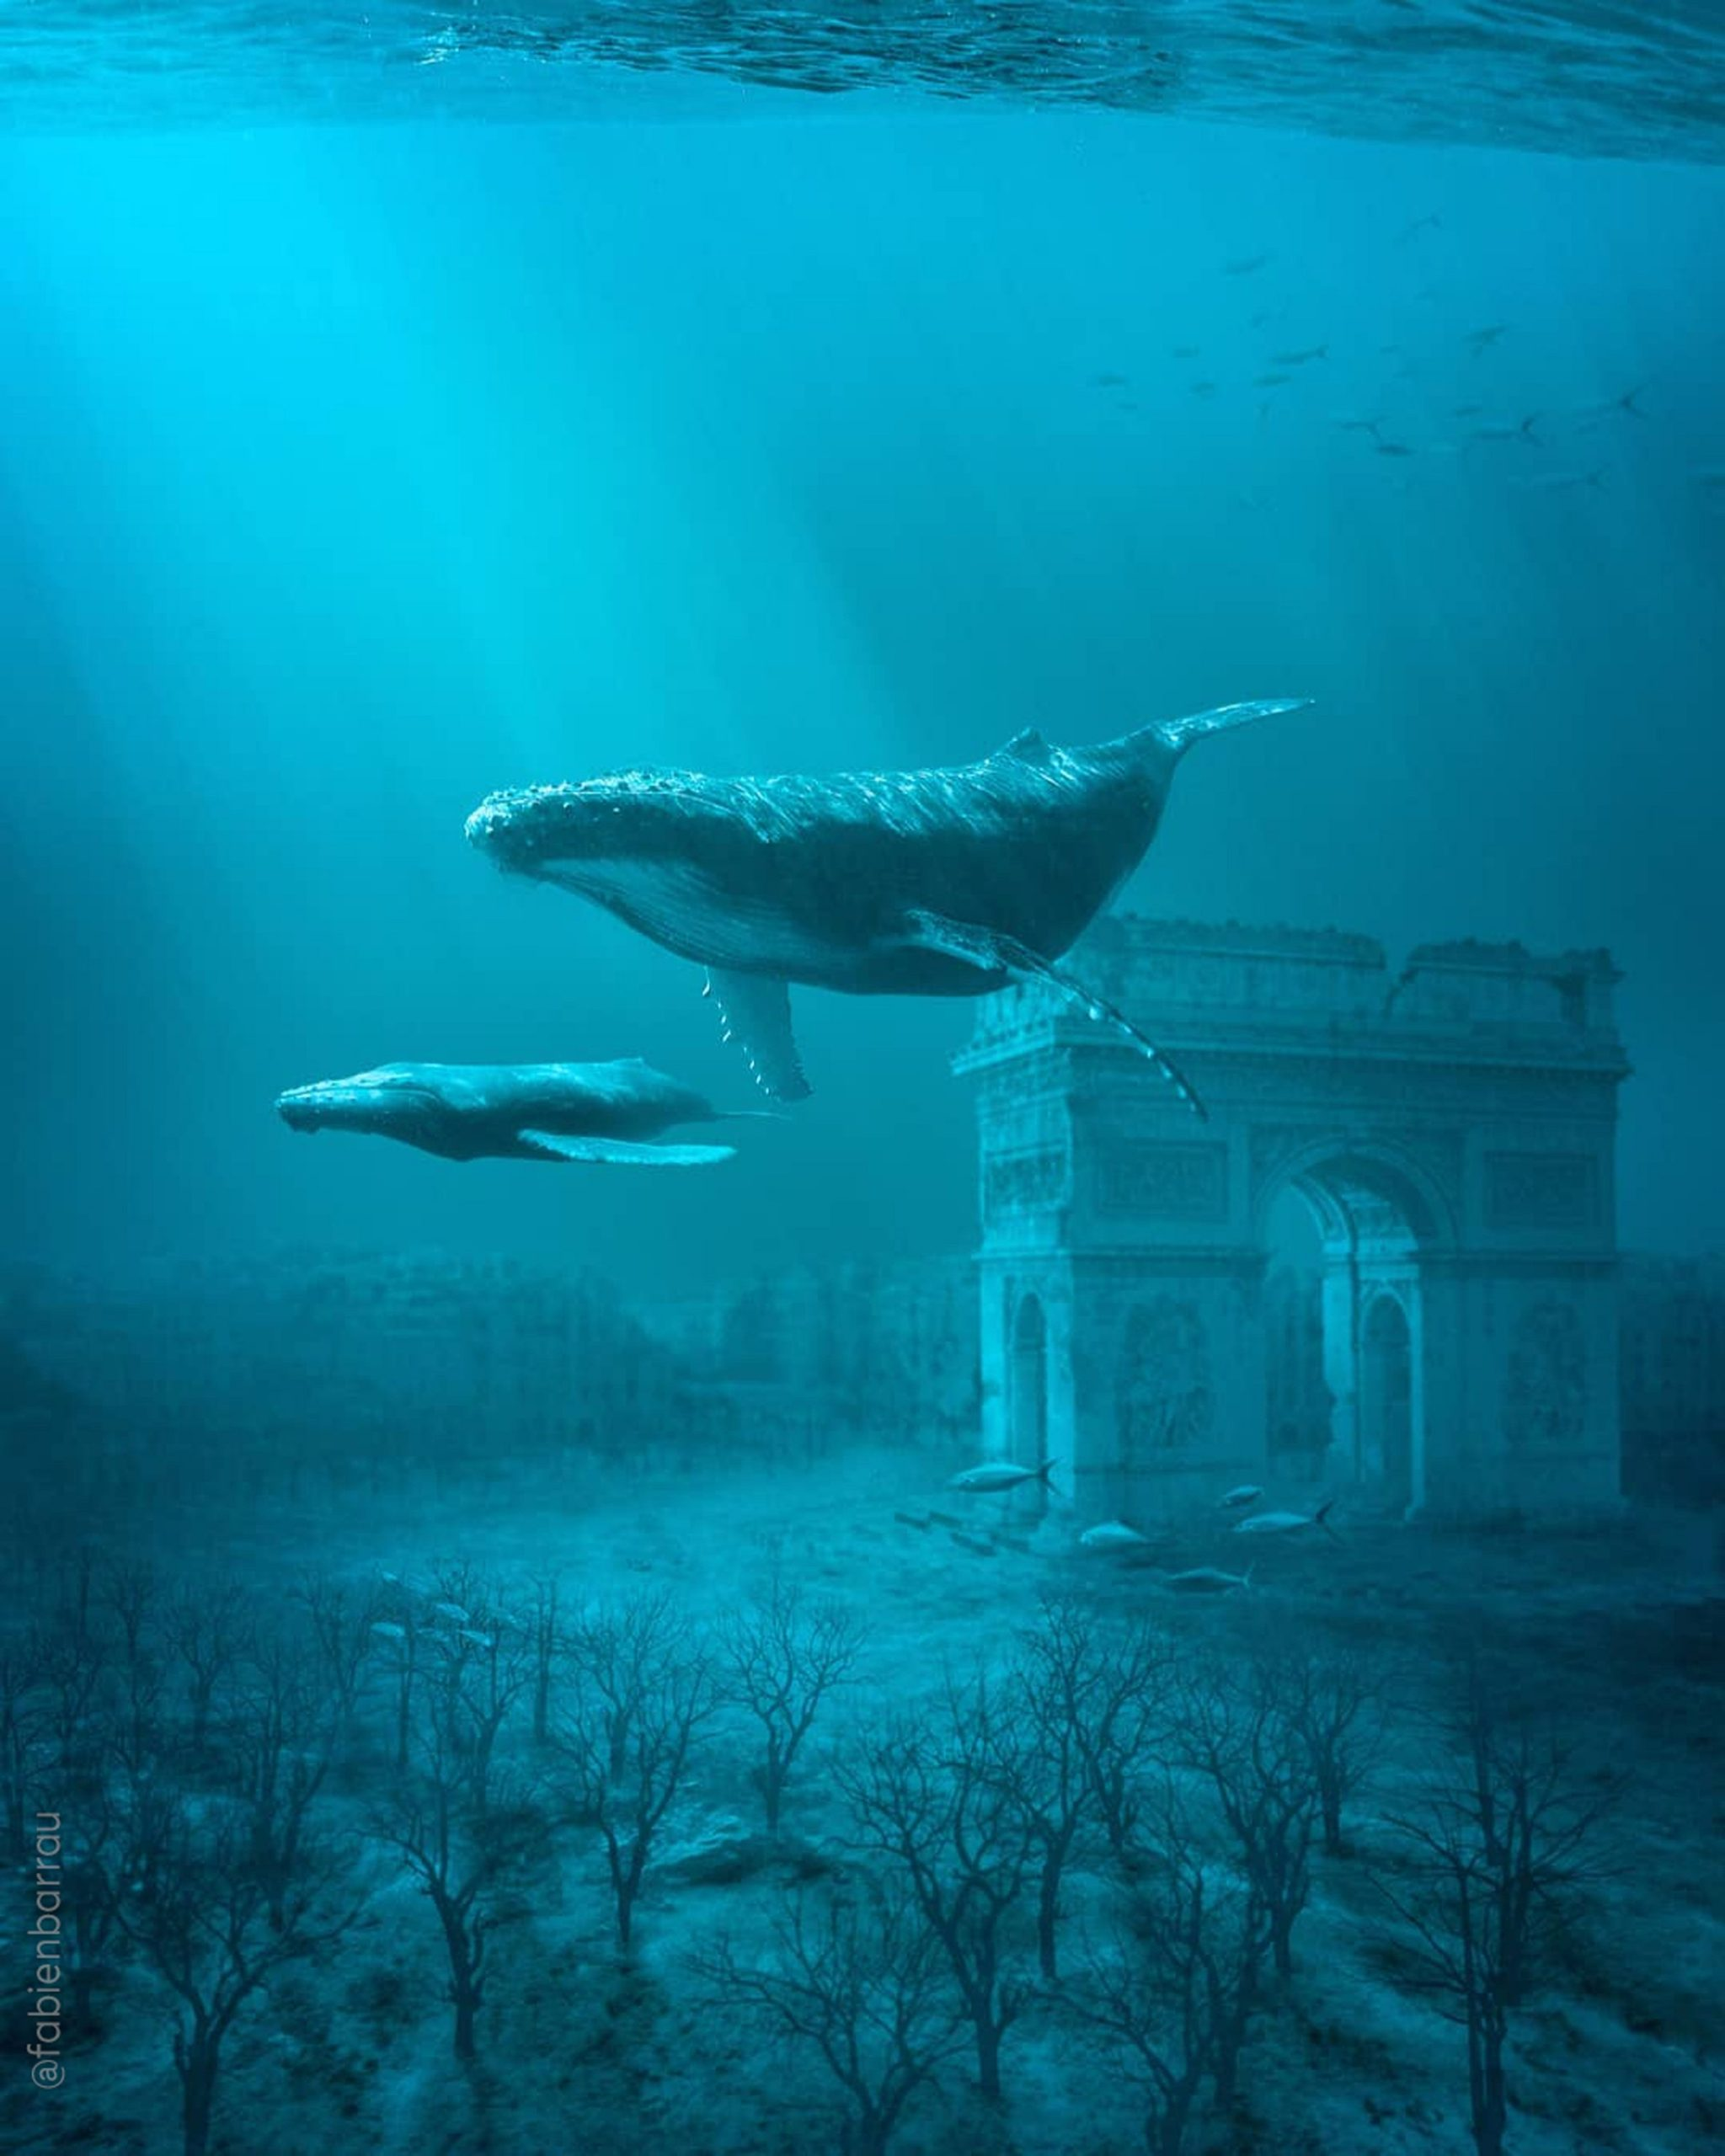 Paris and whales from News from the Future by Fabien Barrau